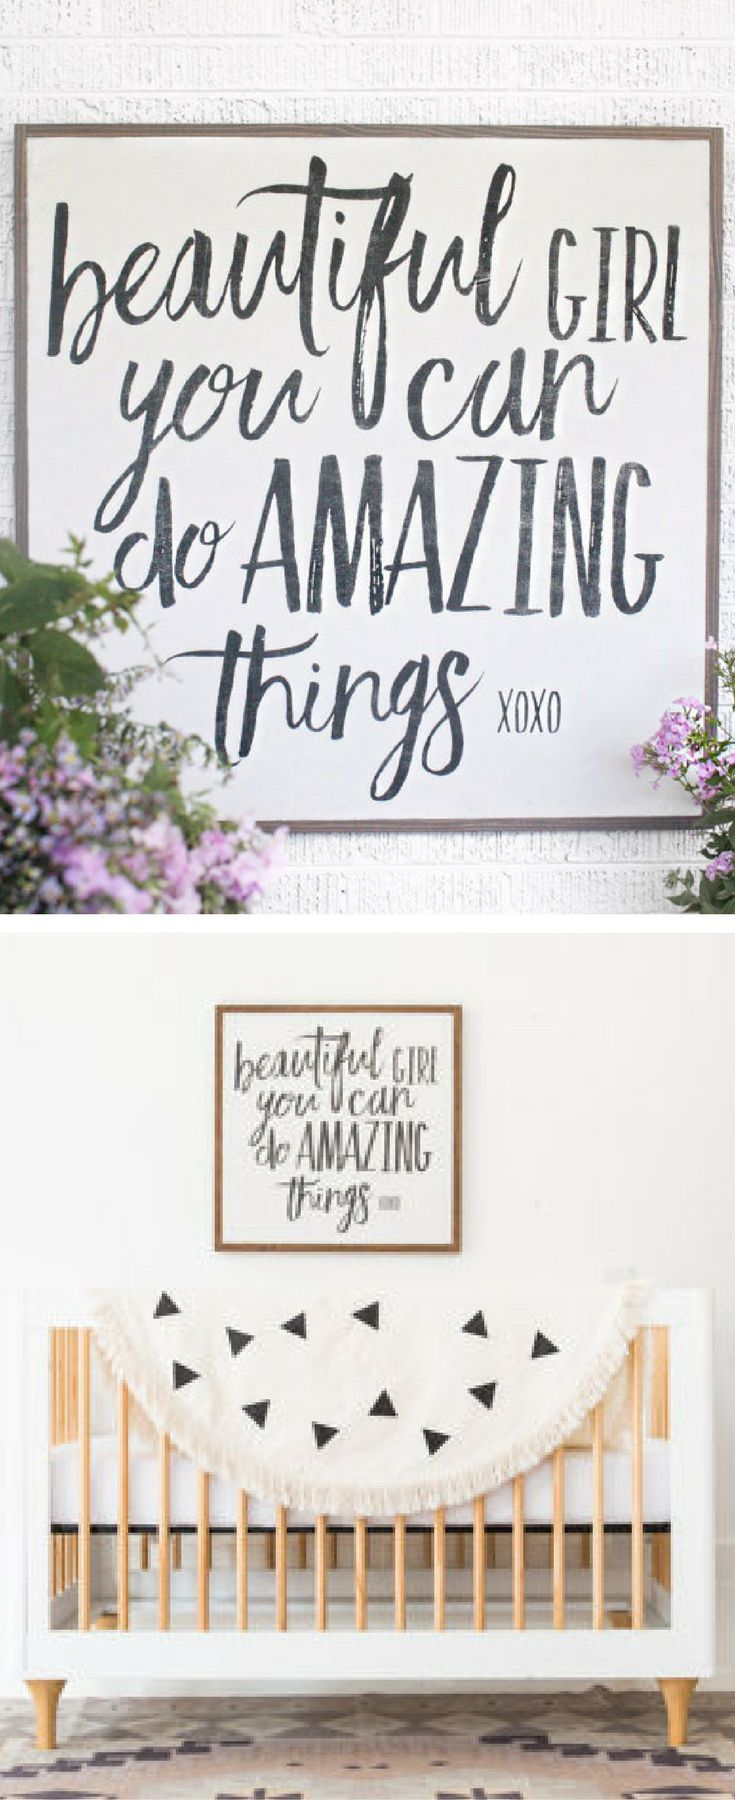 Such a great quote for a little girl's room or a baby girl nursery! Beautiful girl you can do amazing things! Baby Girl nursery decor, Home decor, Girl wall art, Rustic Nursery decor, inspirational gift idea #ad